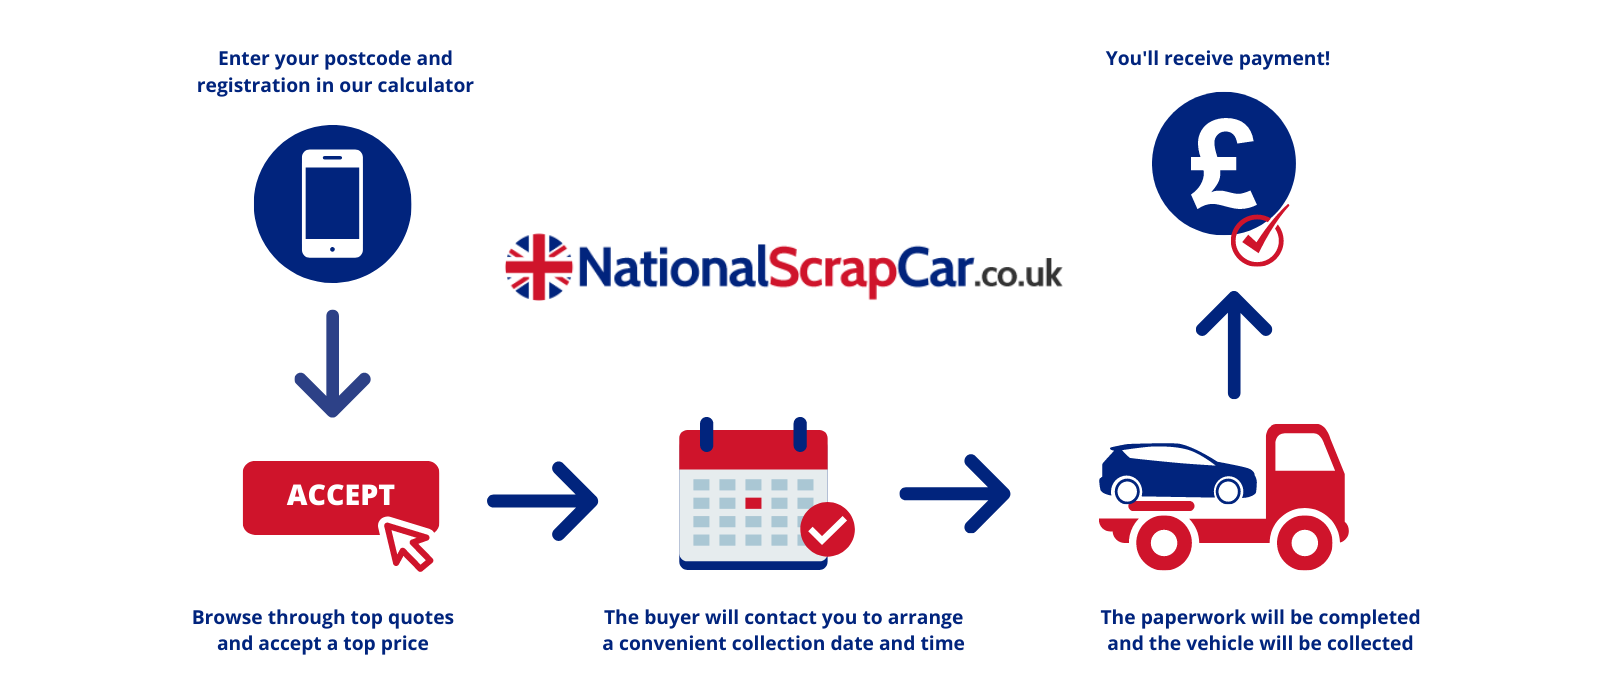 The process of getting money for a scrap car